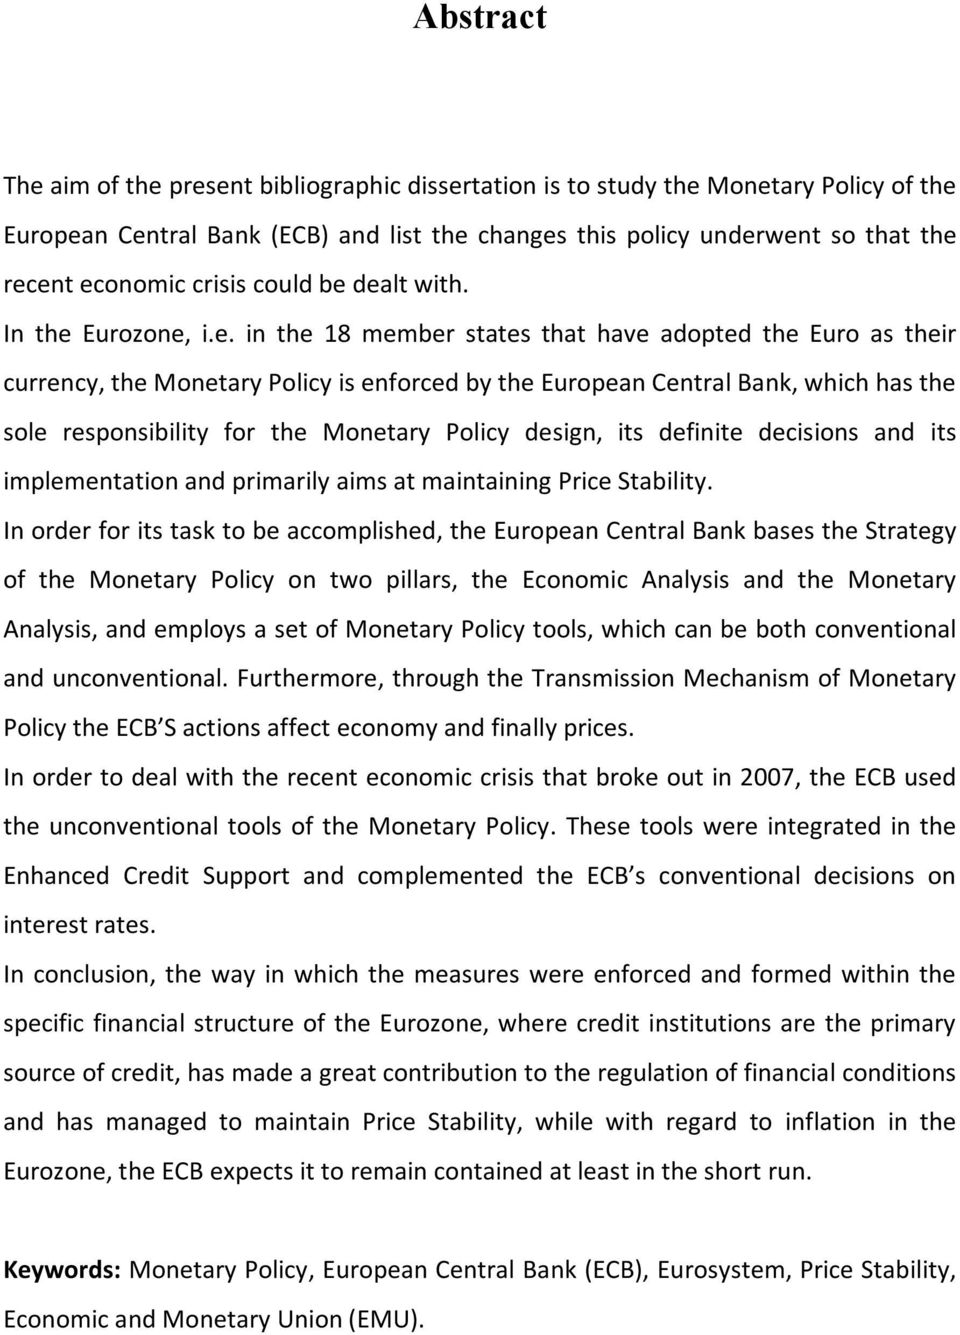 dealt with. In the Eurozone, i.e. in the 18 member states that have adopted the Euro as their currency, the Monetary Policy is enforced by the European Central Bank, which has the sole responsibility